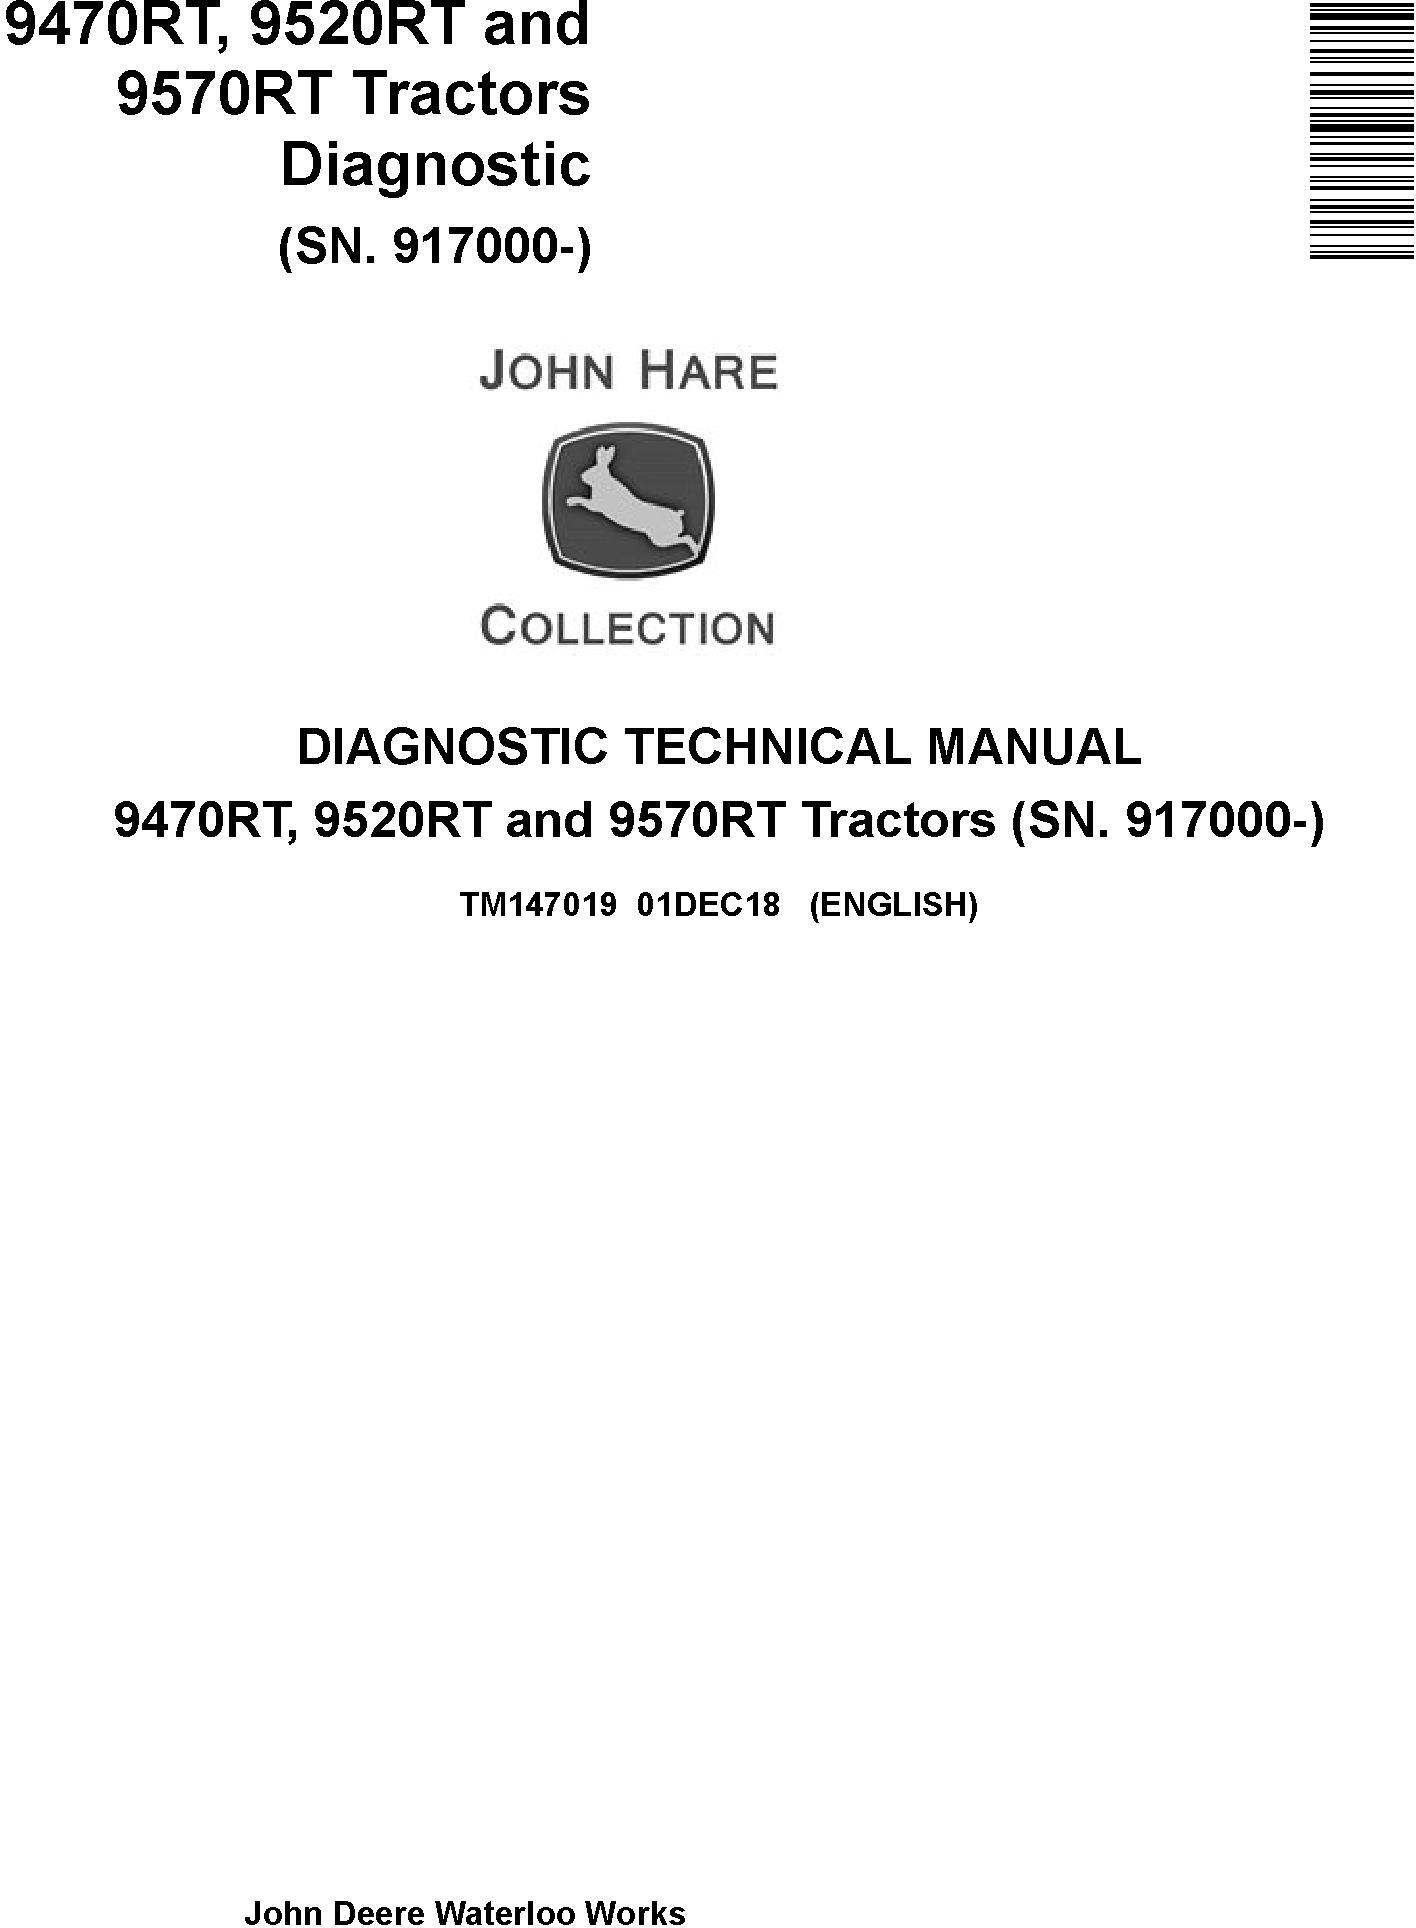 John Deere 9470RT, 9520RT and 9570RT Tractors (SN. 917000-) Diagnostic Technical Manual (TM147019) - 19094